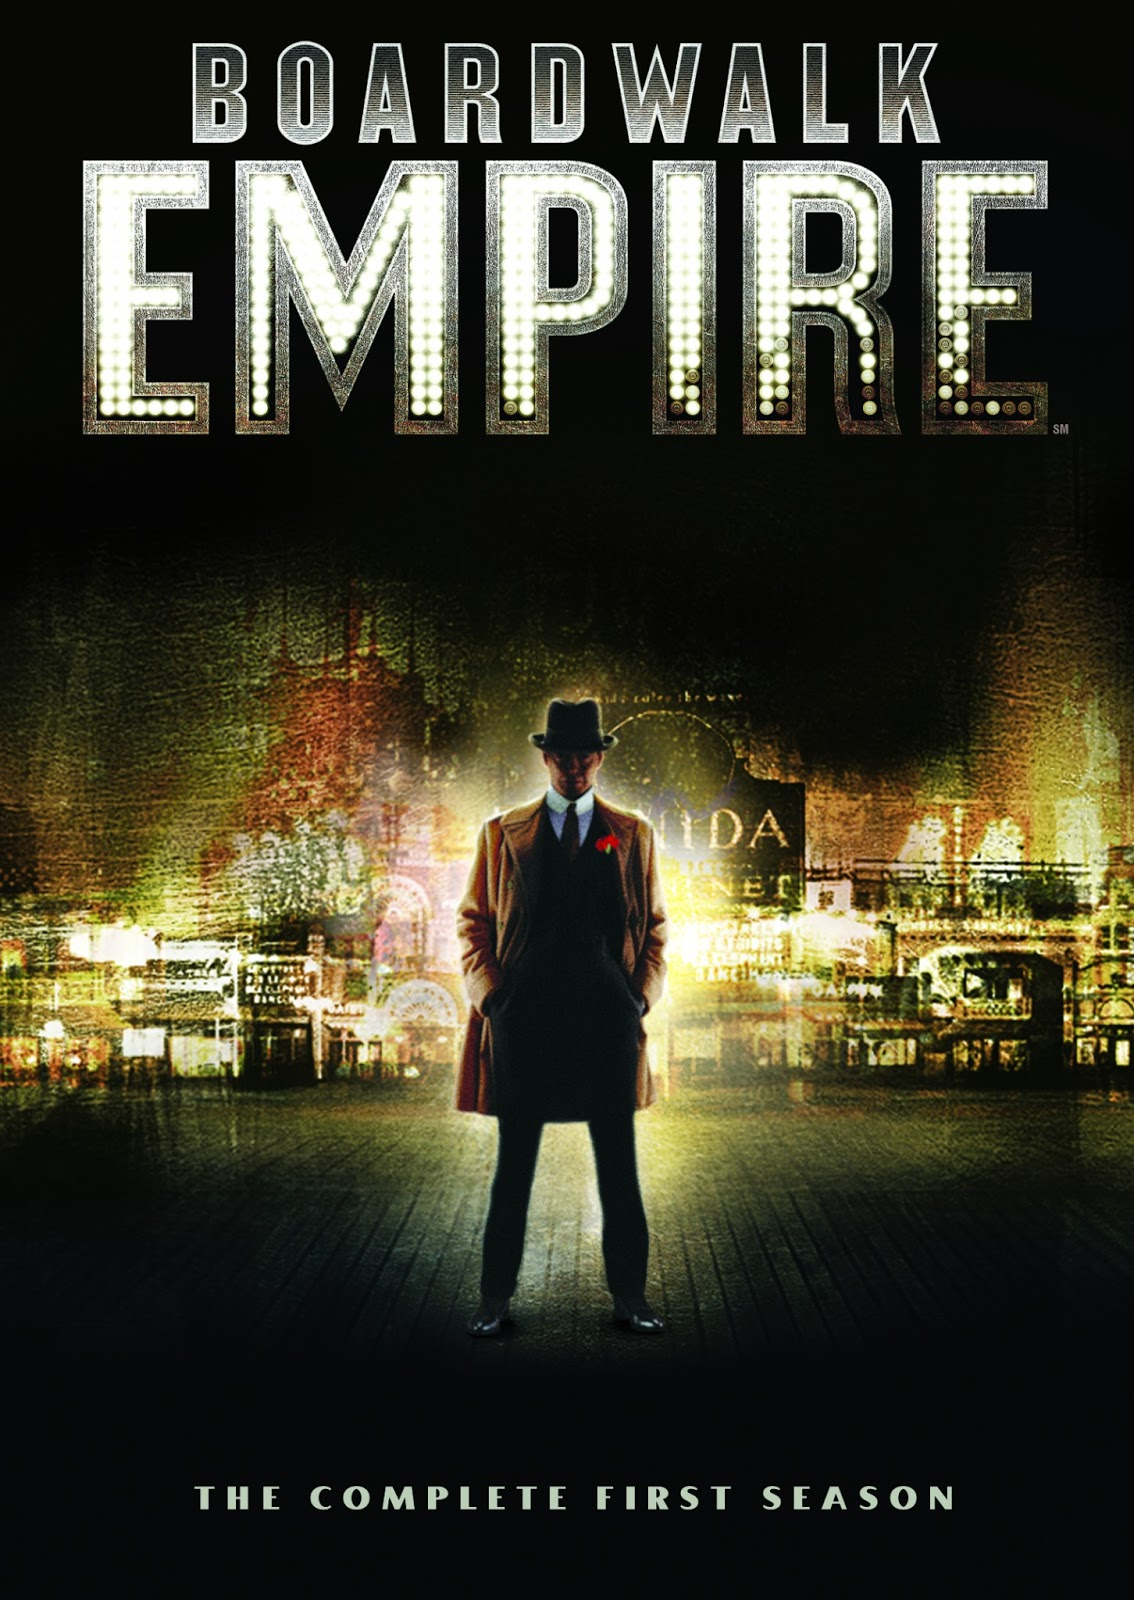 Boardwalk Empire, Season 1